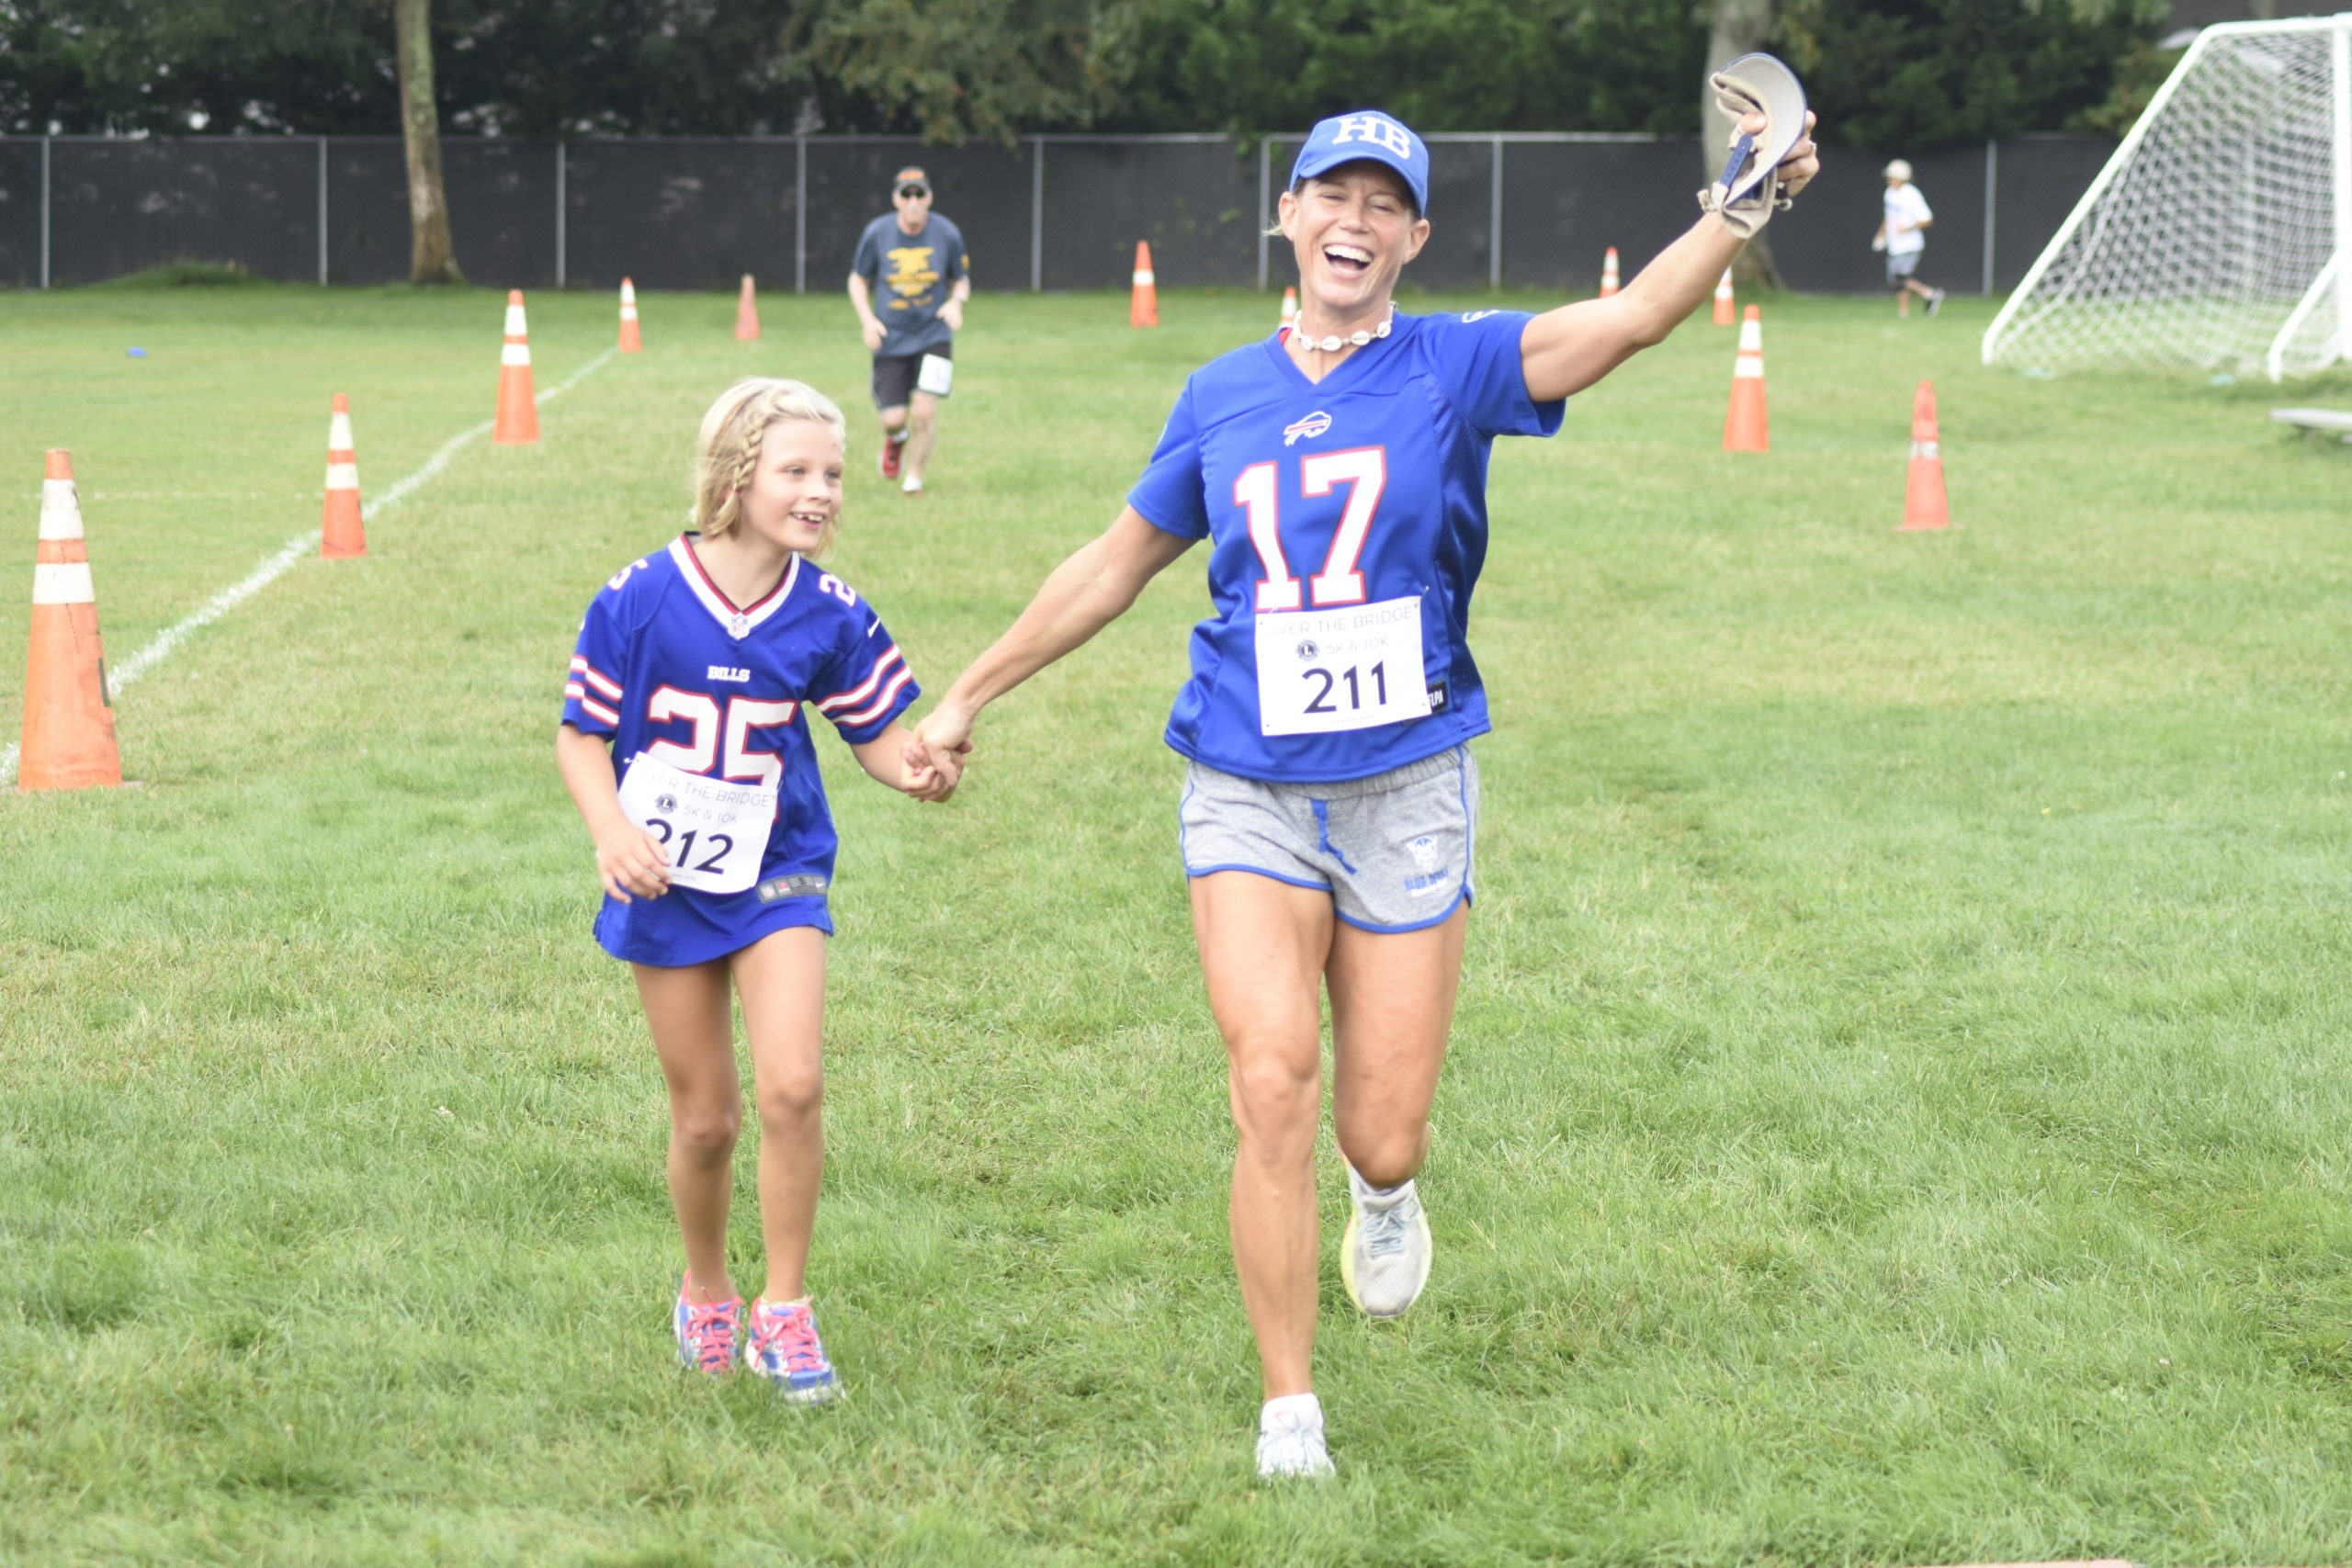 Anabel, left, and Jessica Ramsay of Hampton Bays cross the finish line together.